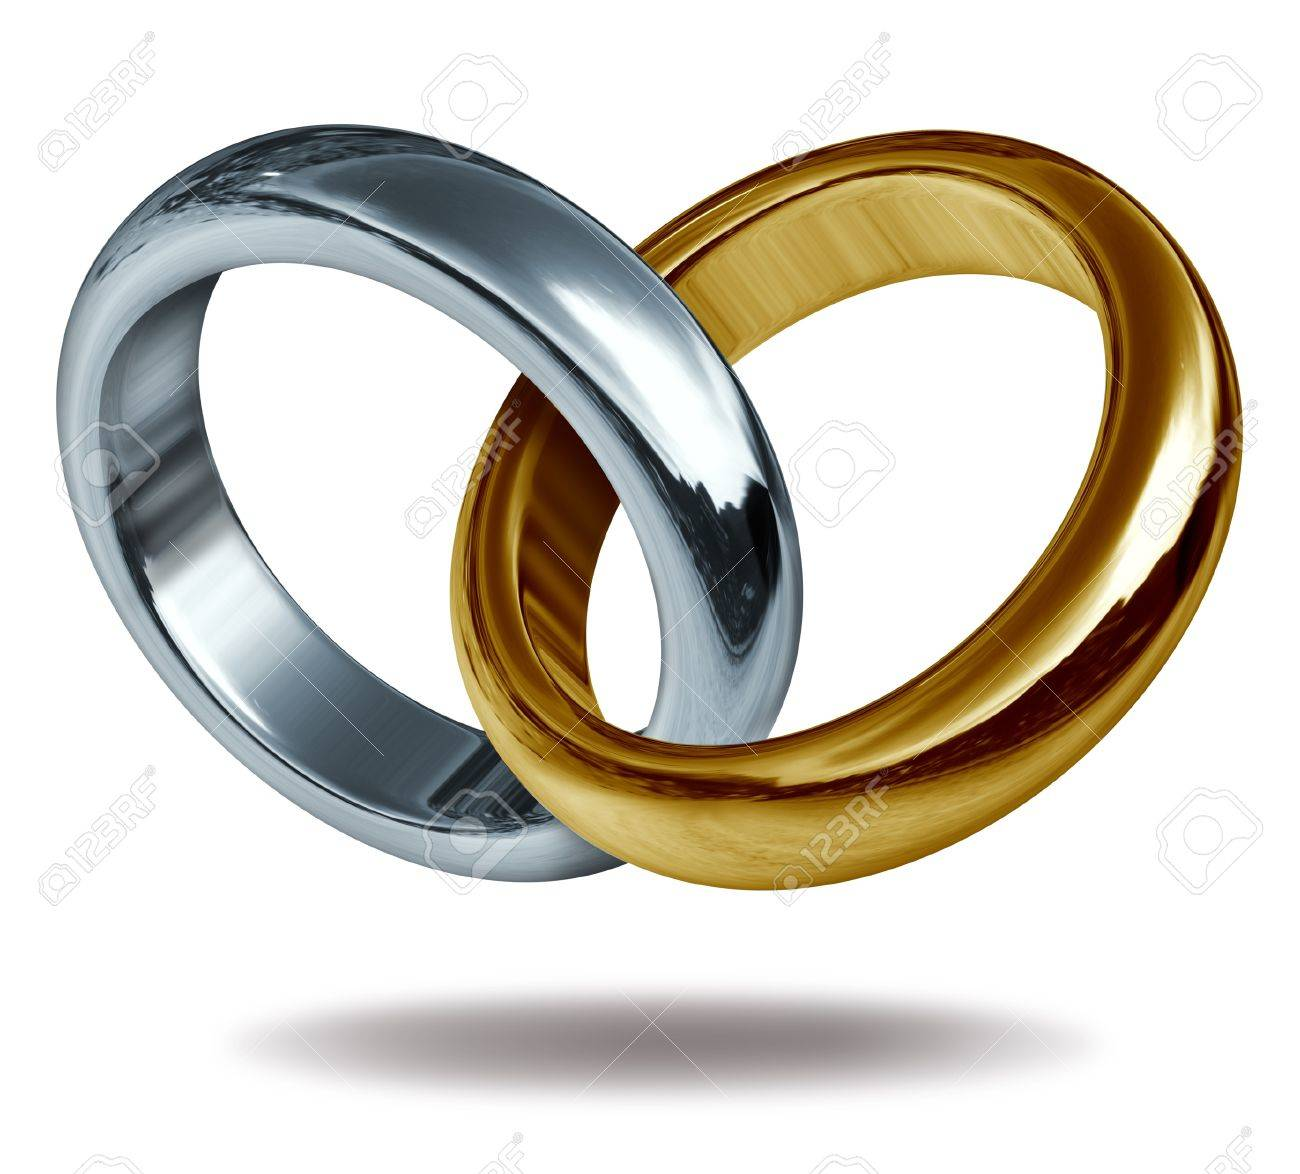 Wedding rings linked together to form a golden and titanium shape